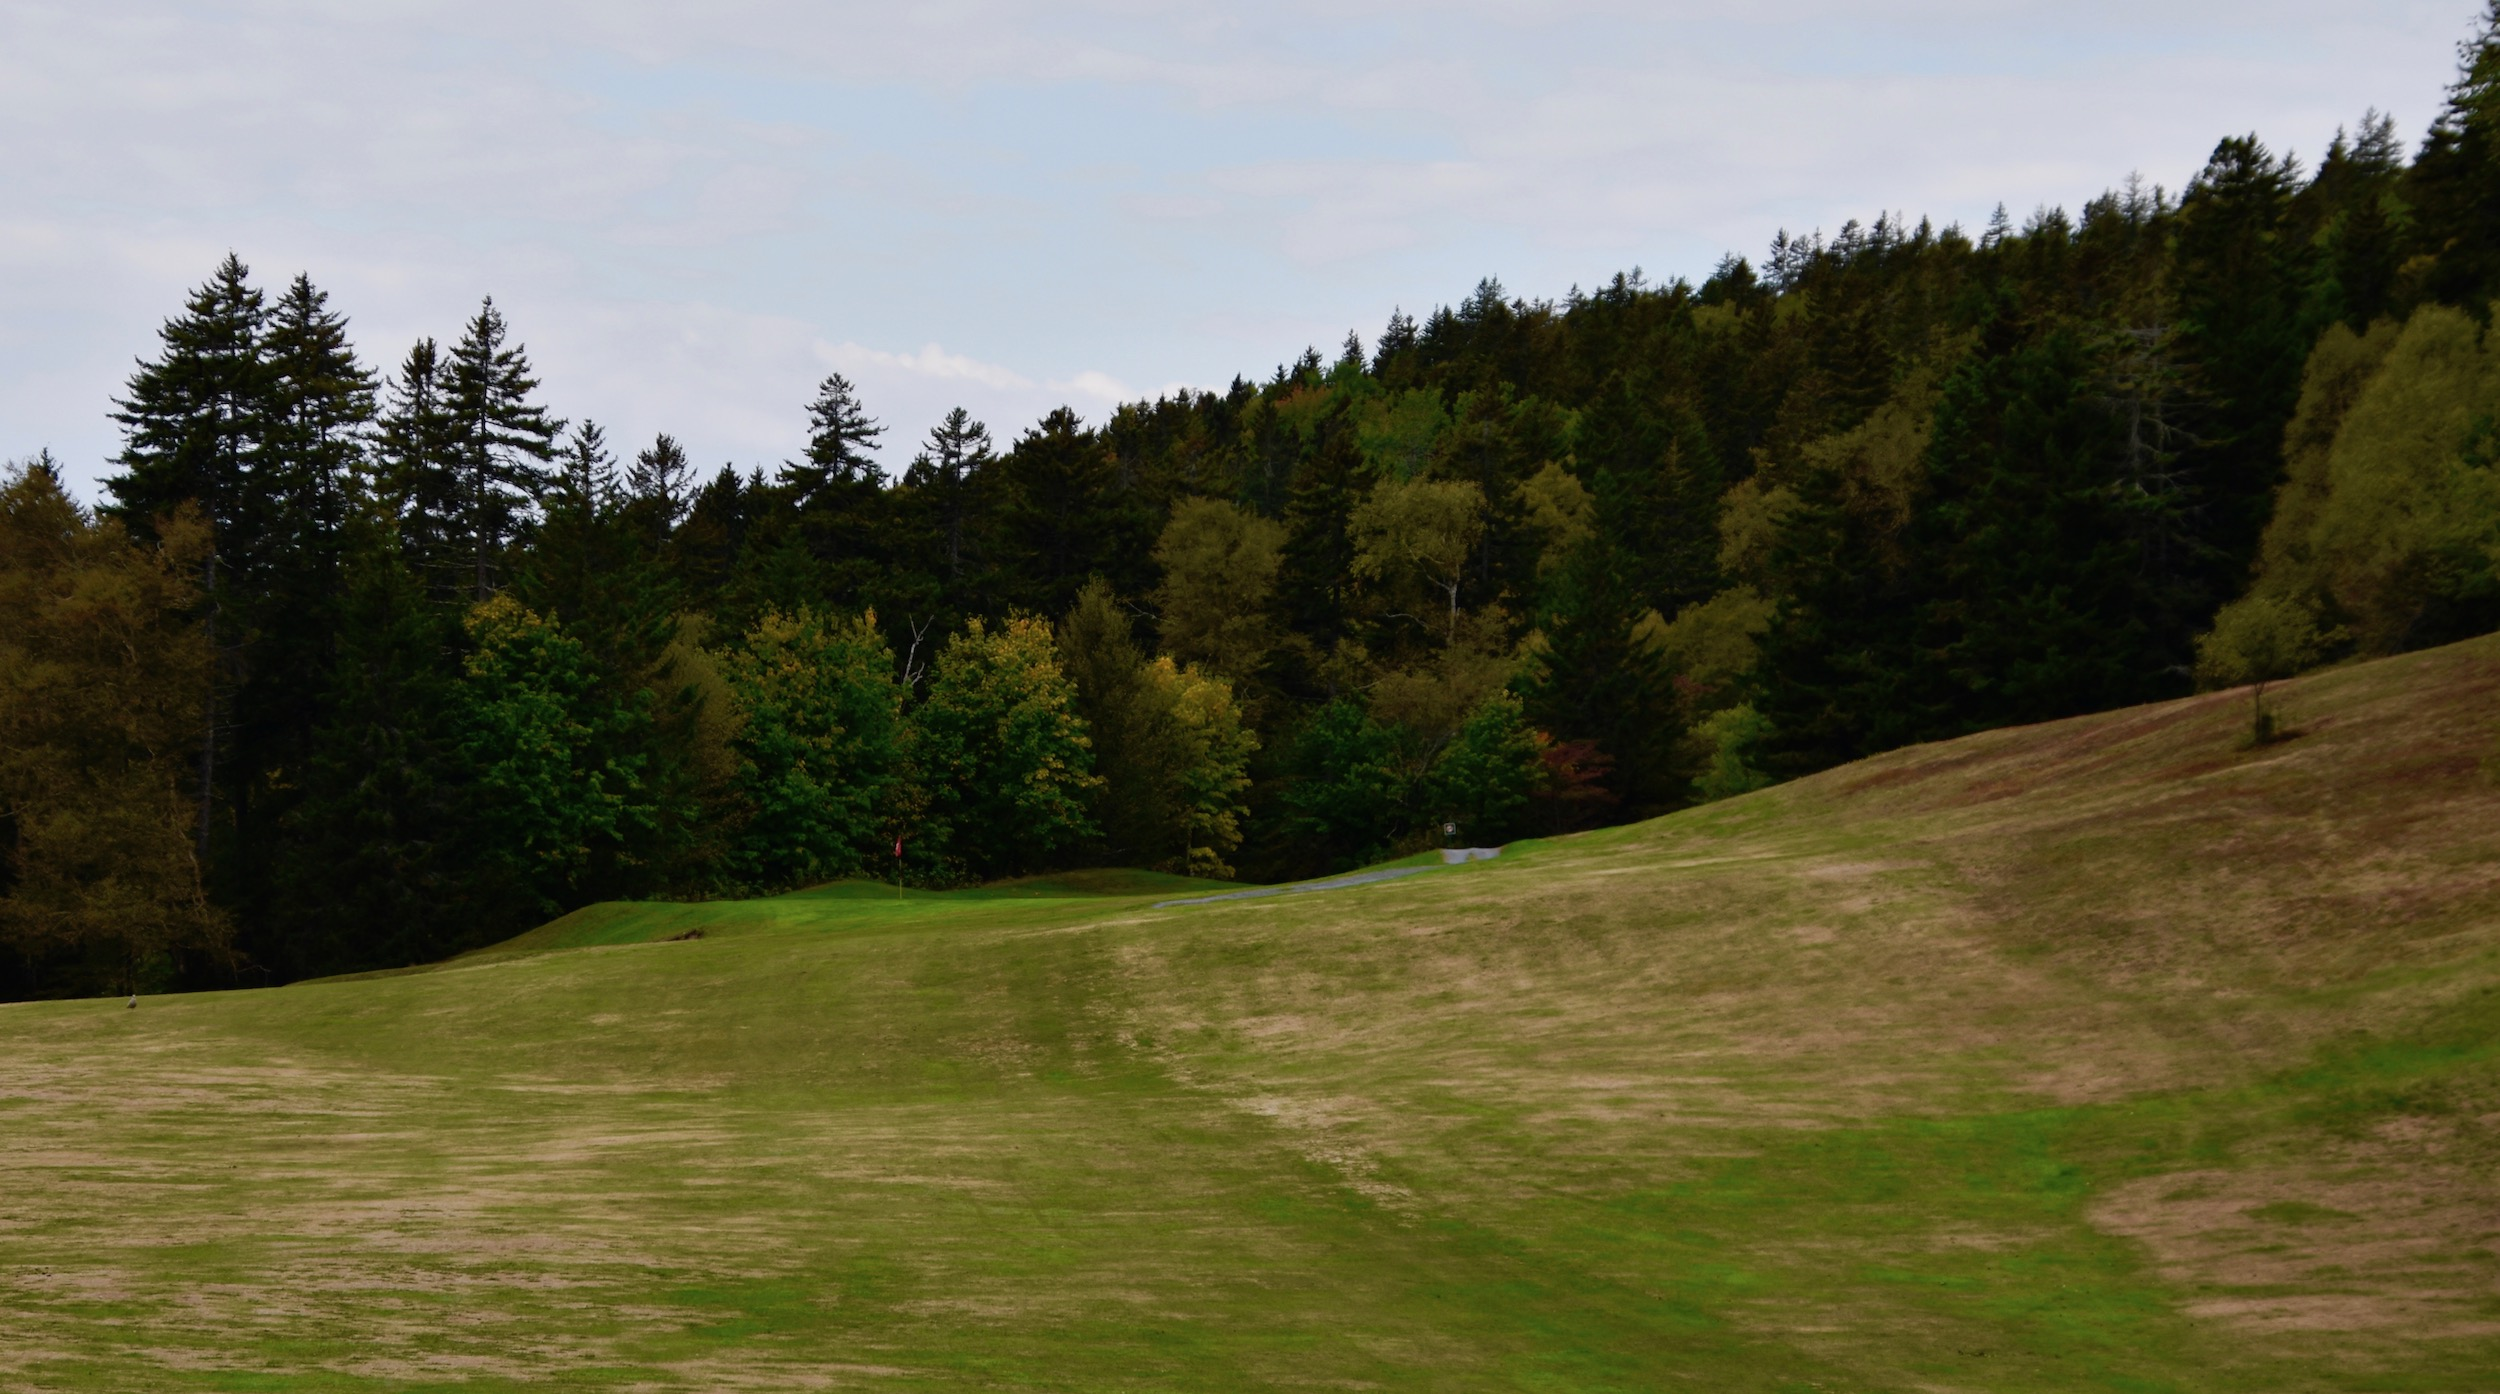 Approach to # 5, Fundy Golf Course